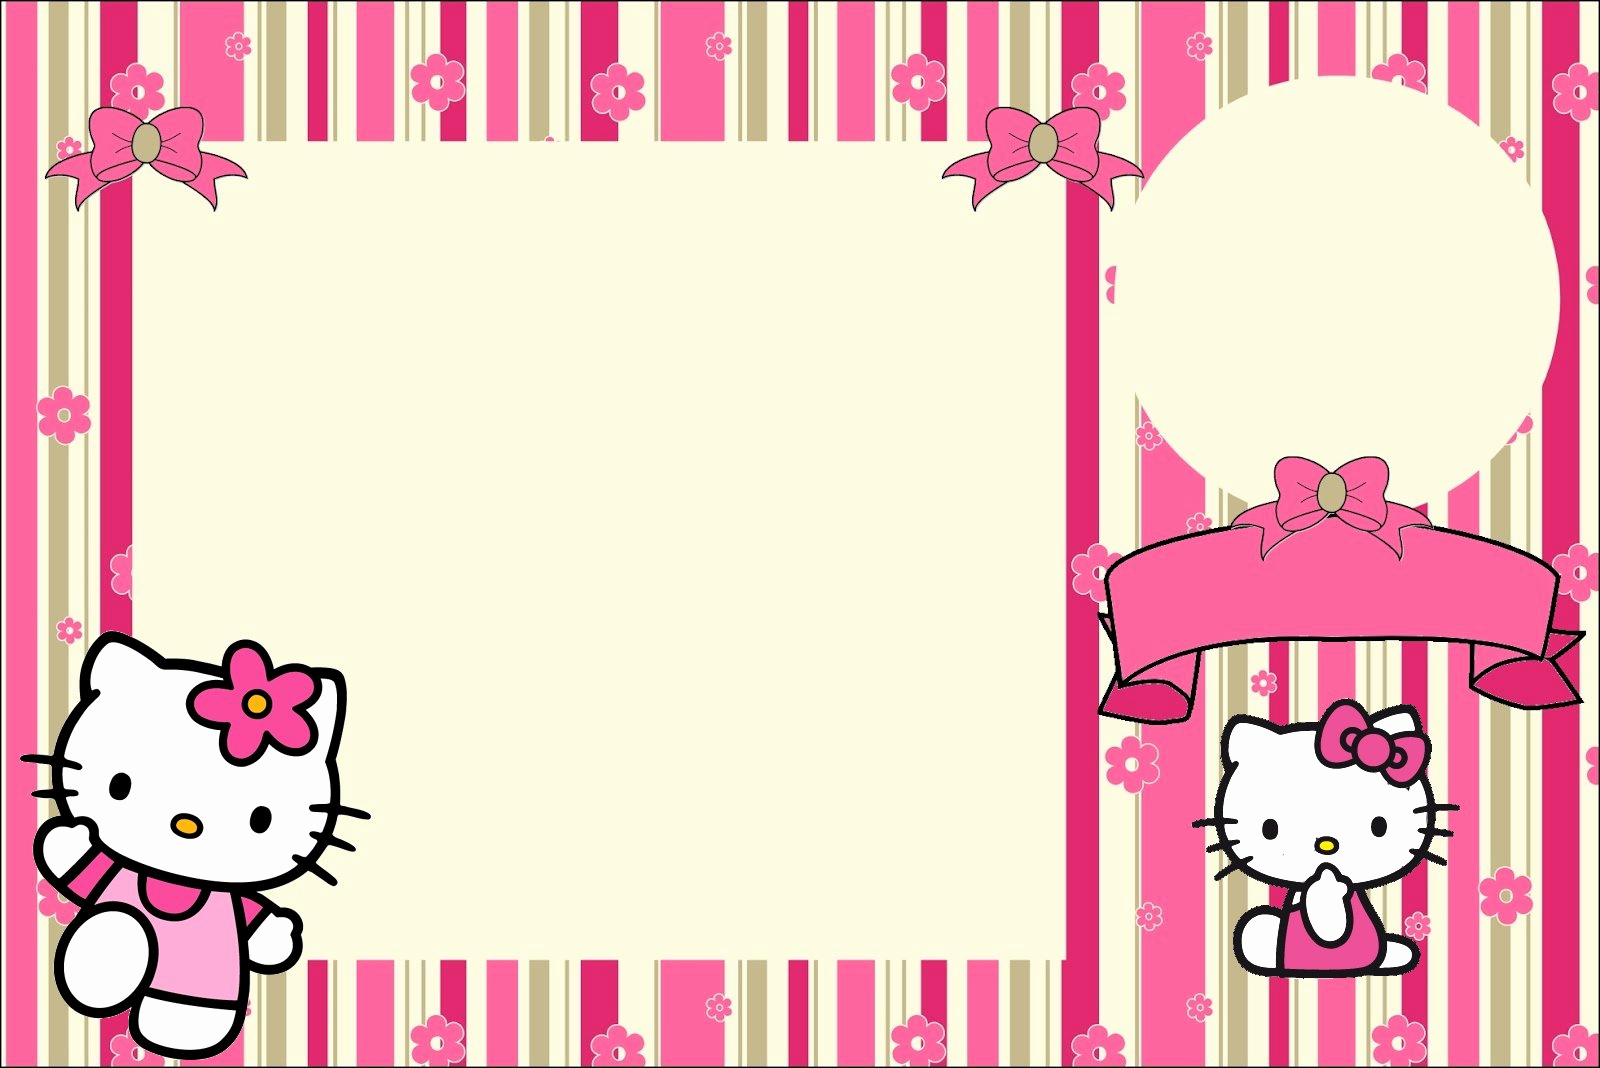 Hello Kitty Invitation Card Inspirational Hello Kitty with Flowers Free Printable Invitations Oh